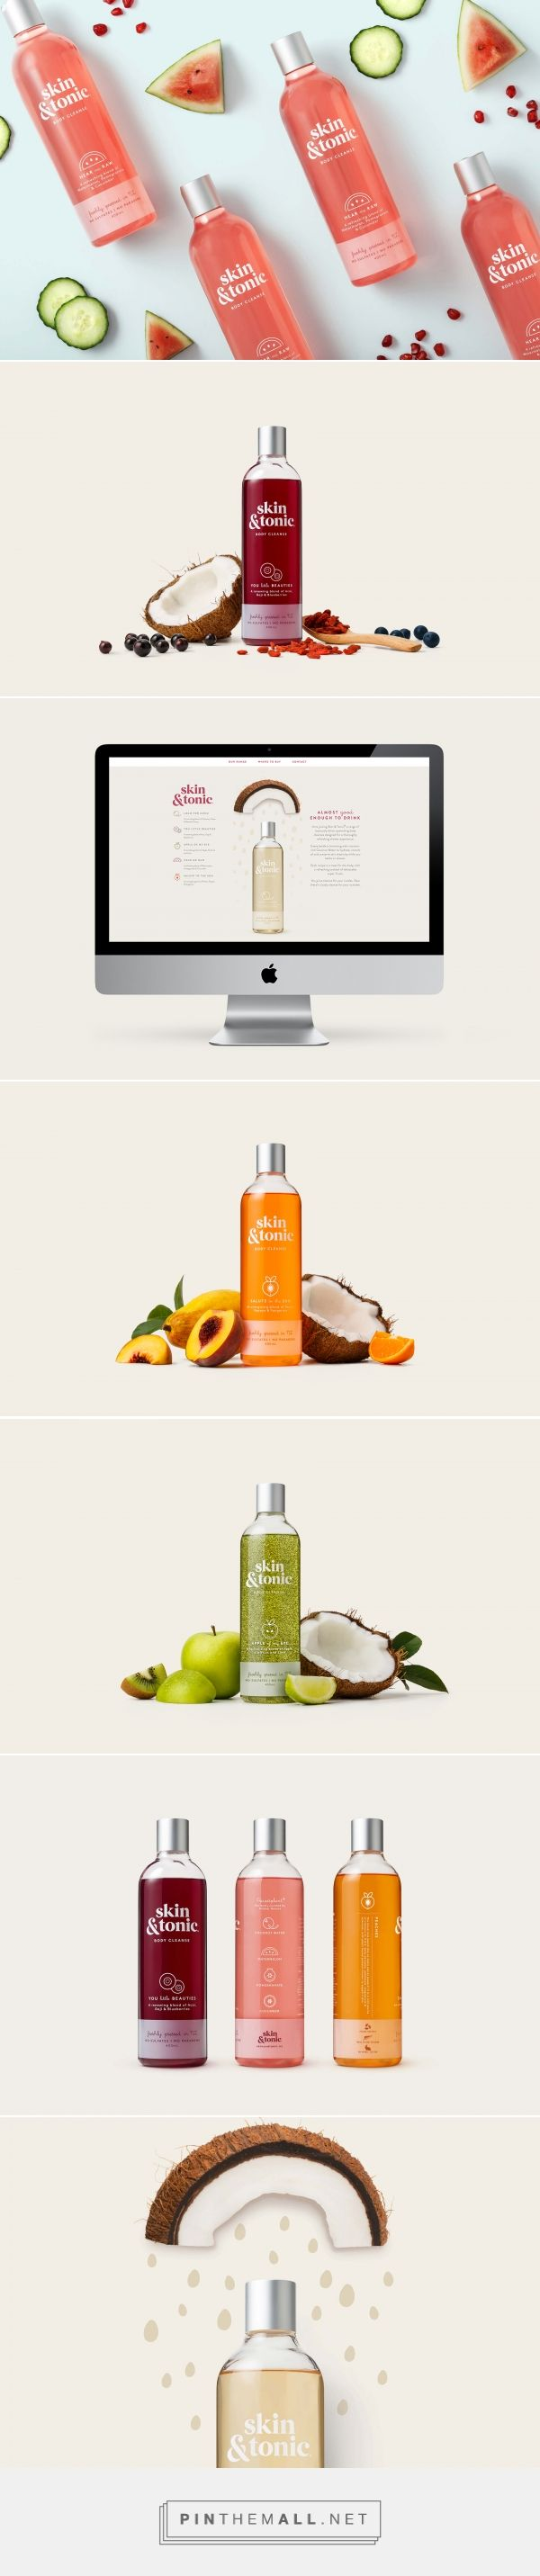 Skin & Tonic Body Care Packaging by Milk NZ Limited | Fivestar Branding Agency – Design and Branding Agency & Curated Inspiration Gallery